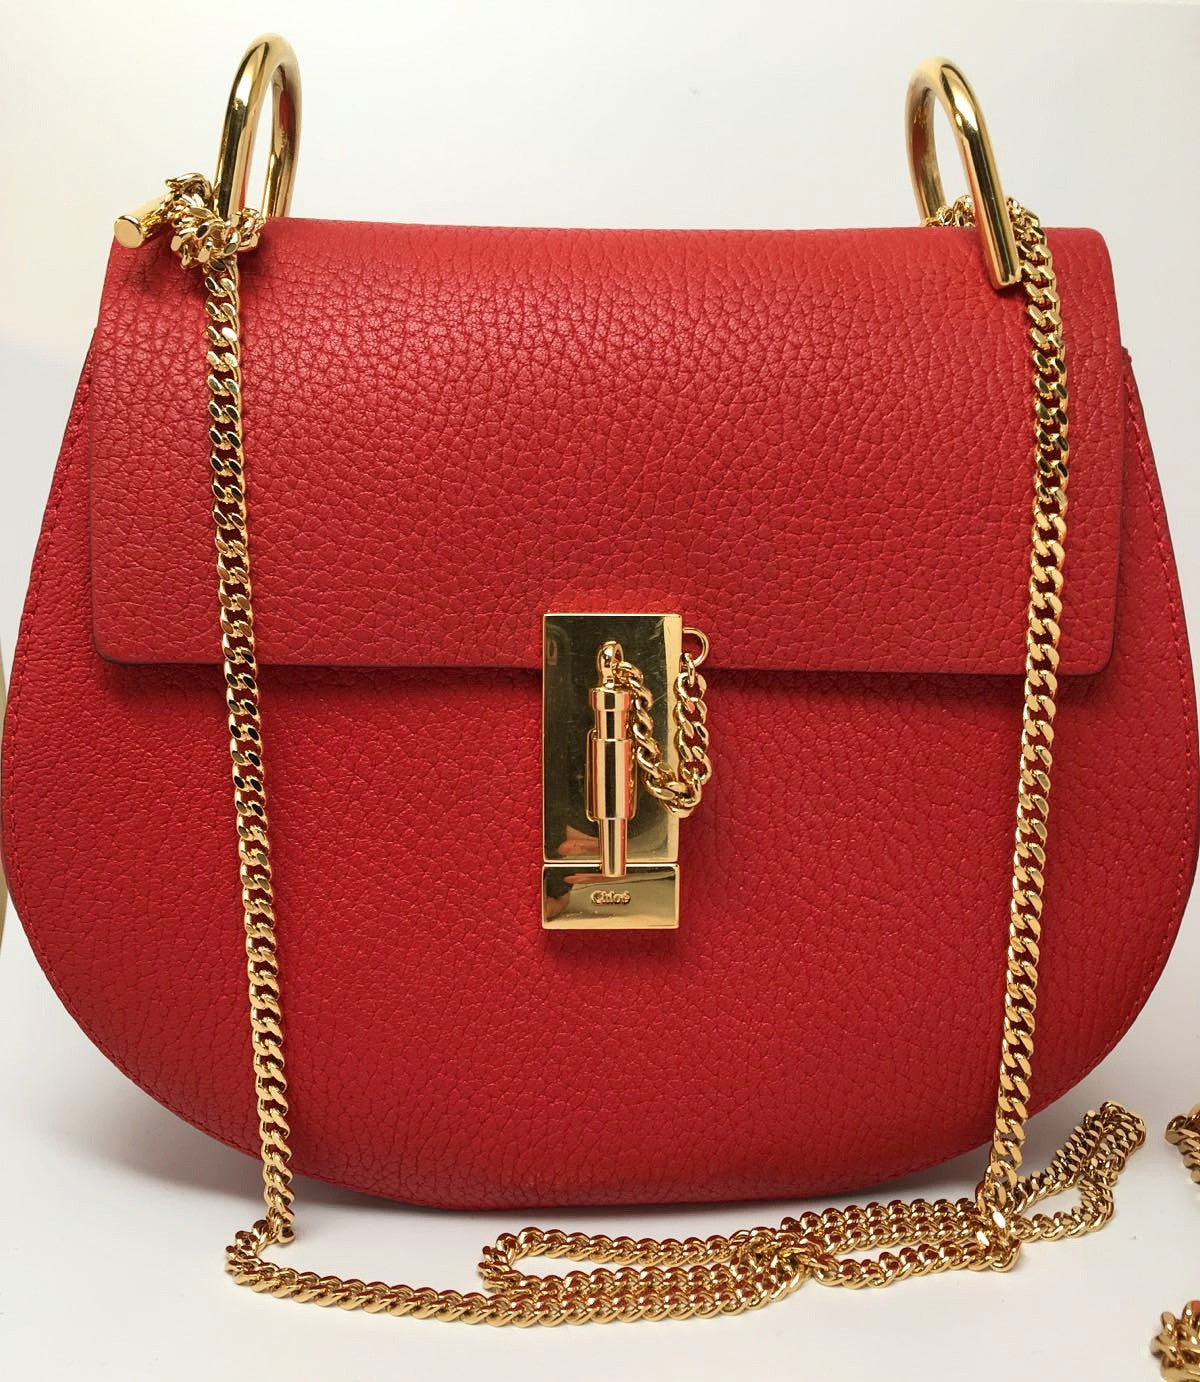 Chloé SMALL DREW LAMBSKIN LEATHER SHOULDER BAG